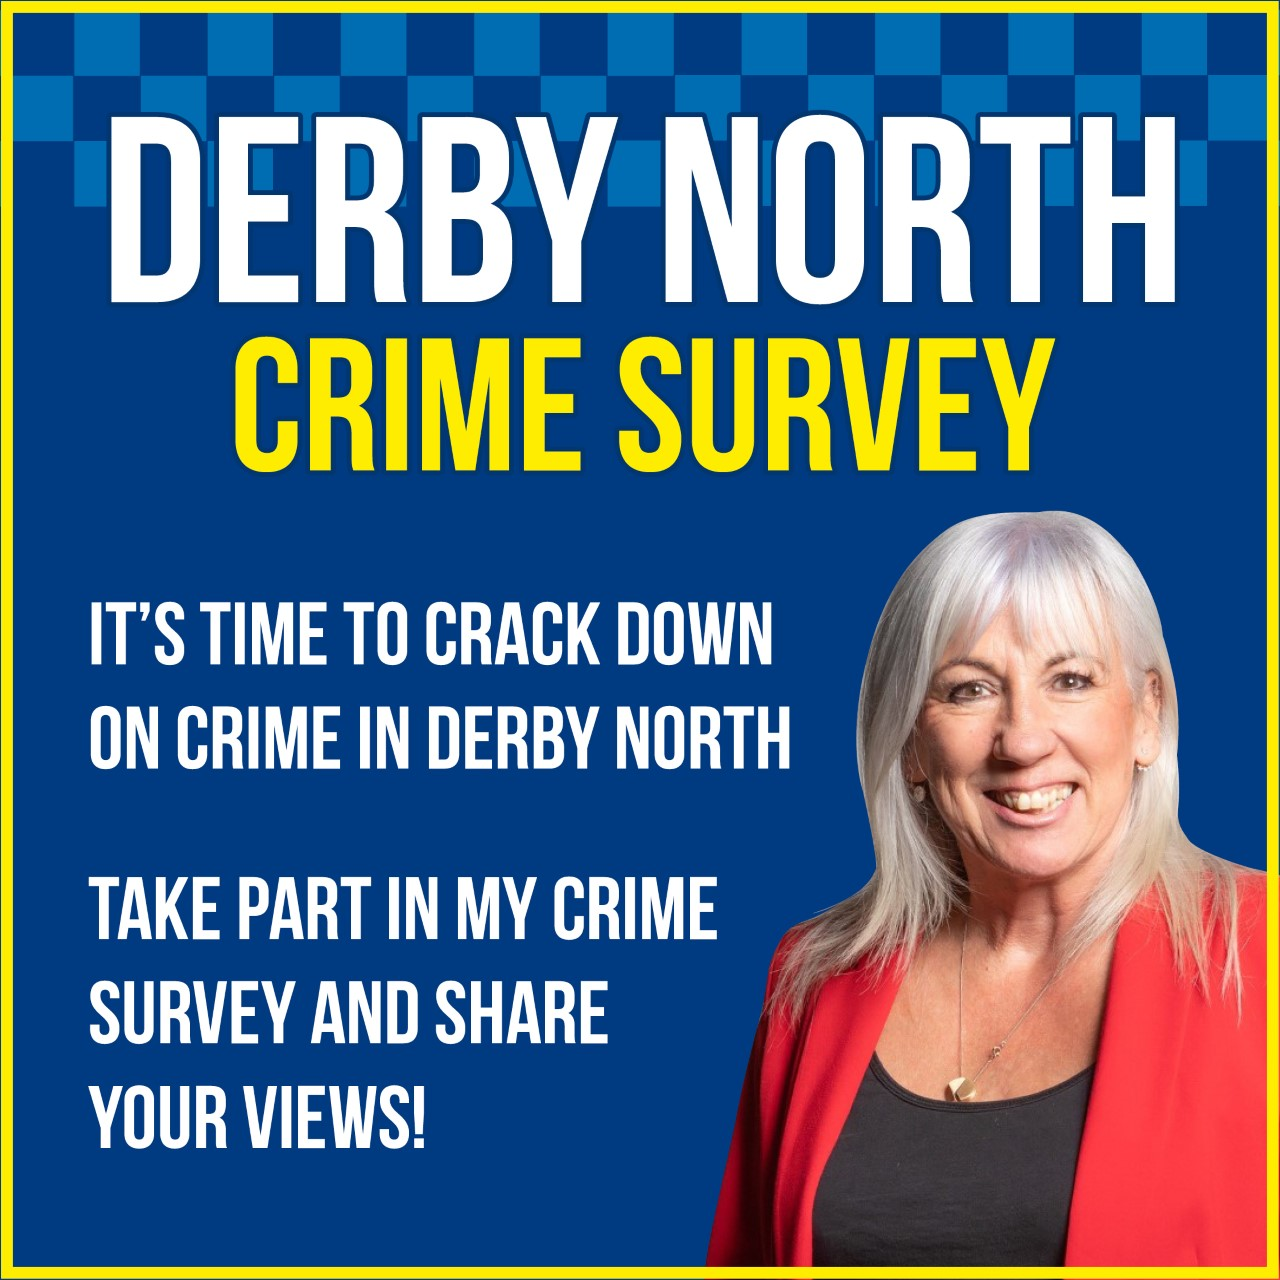 Derby North Crime and Anti-Social Behaviour Survey